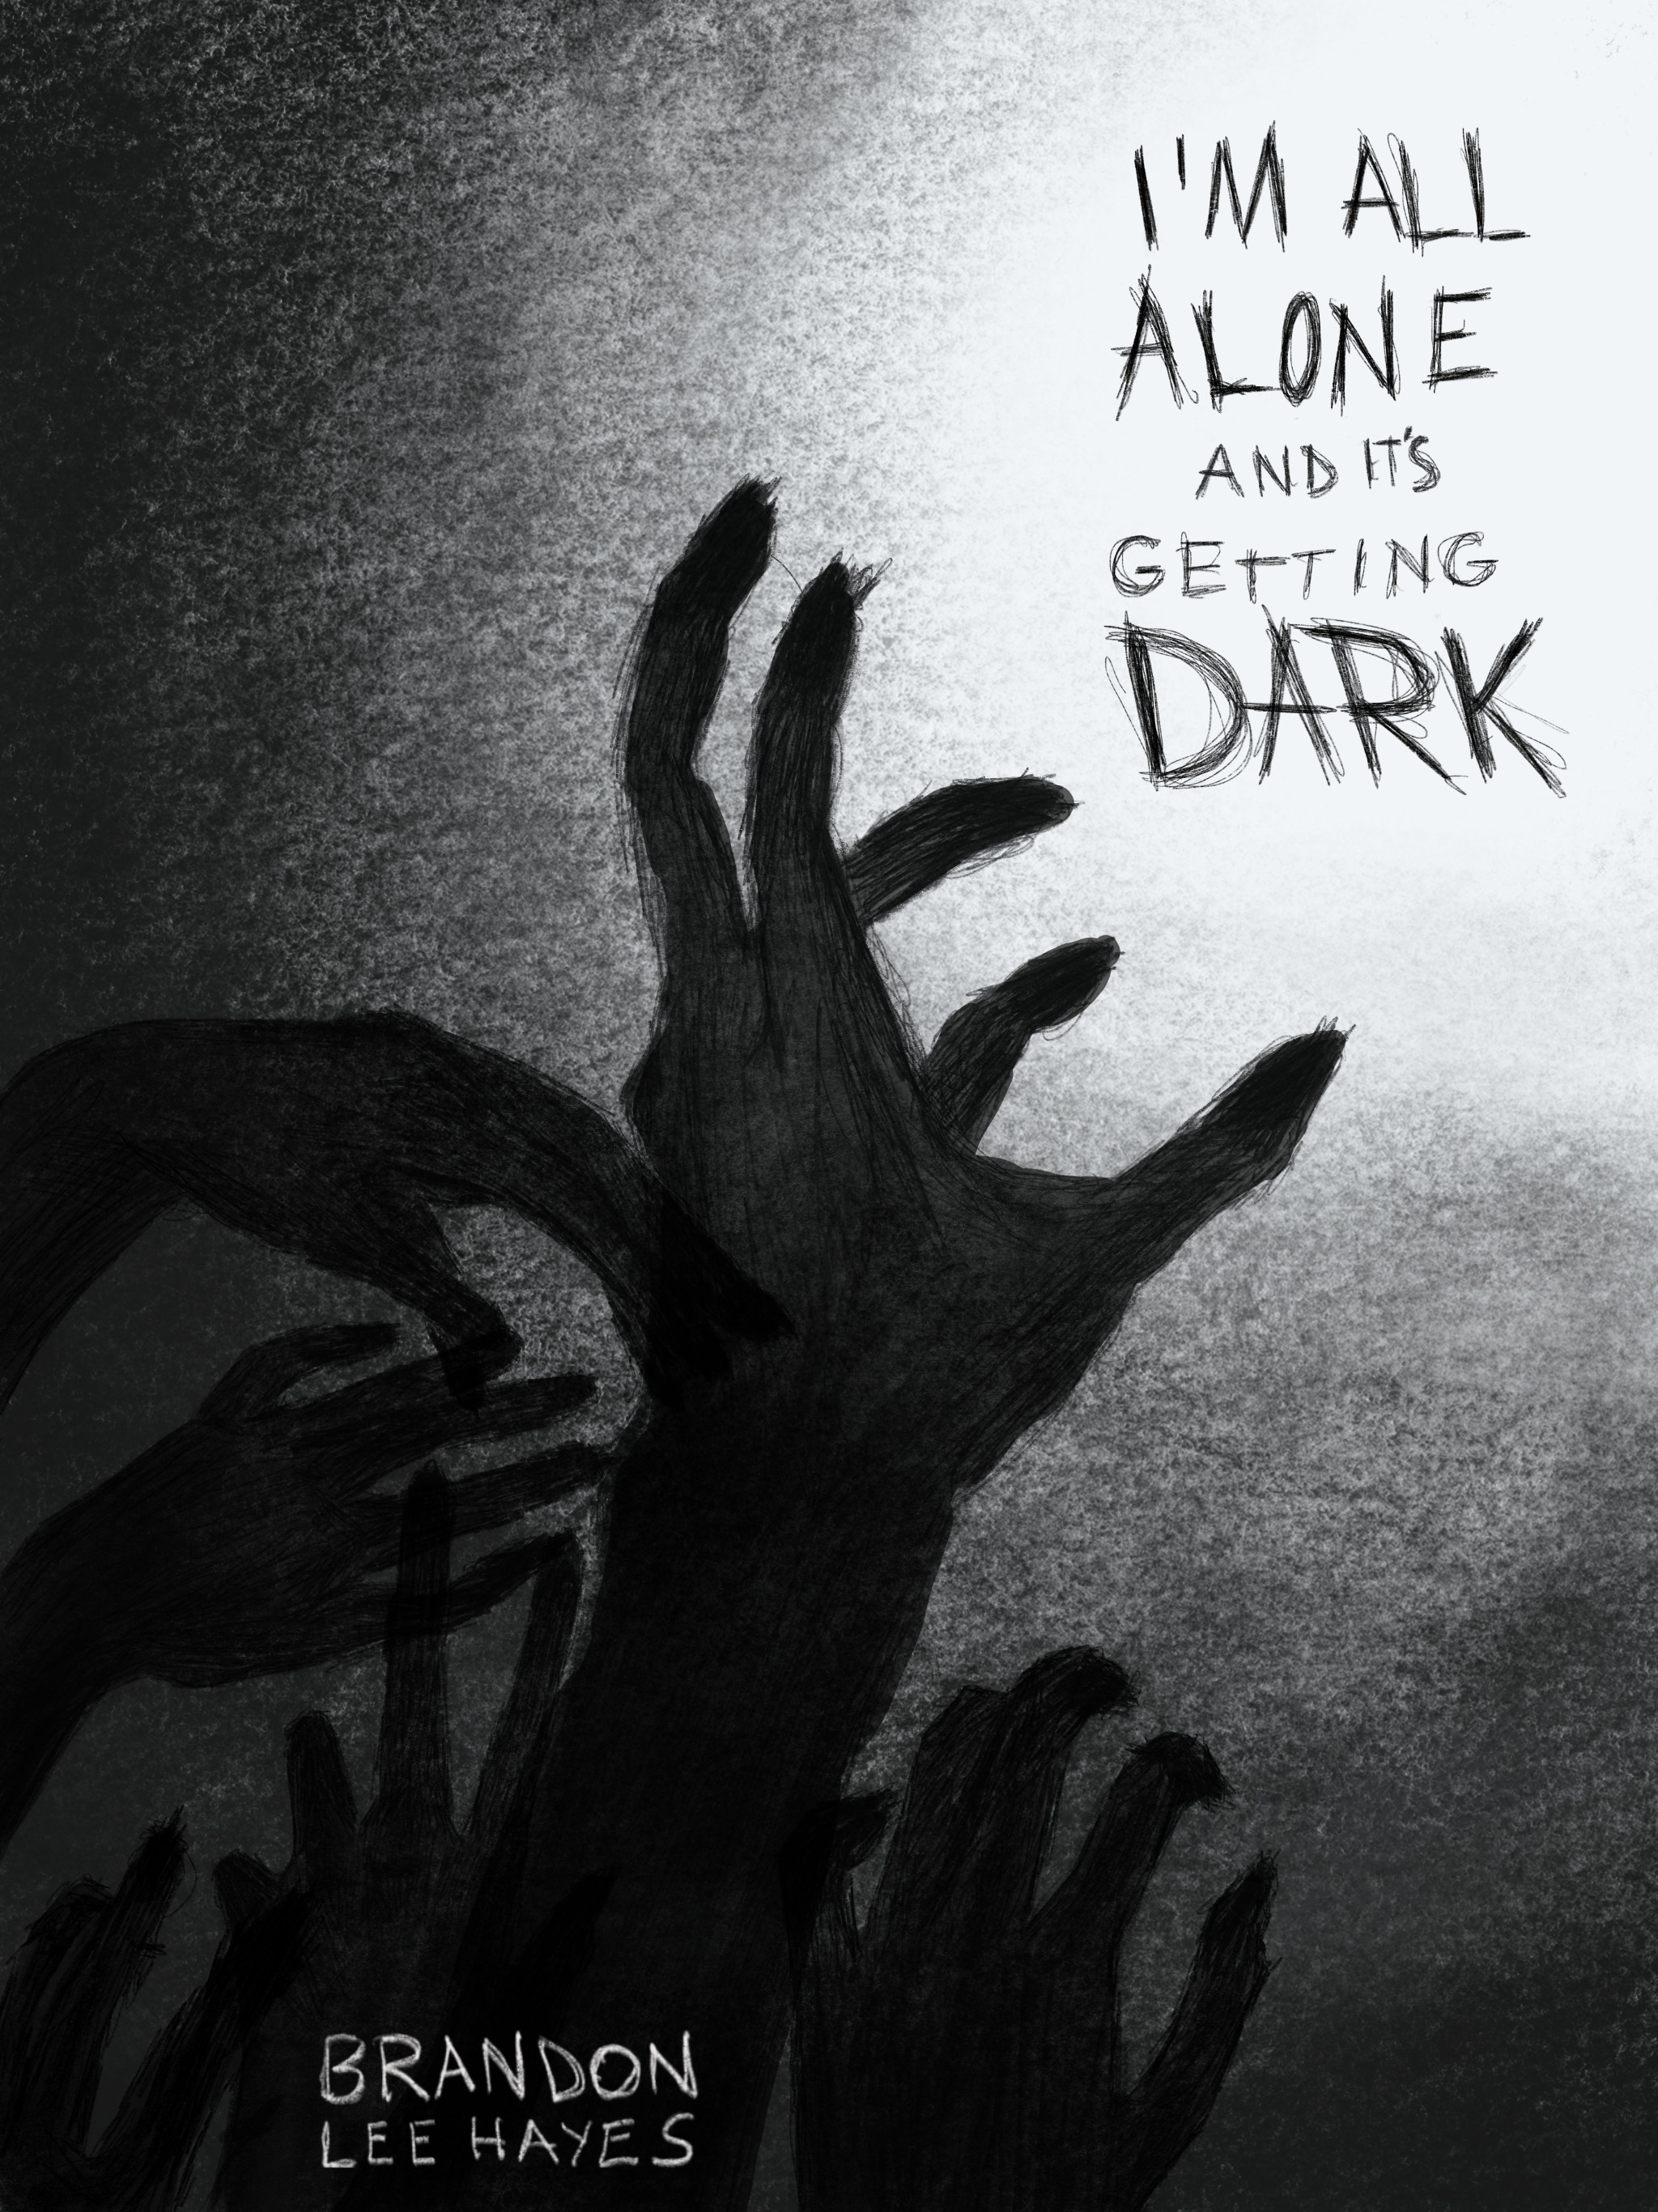 I'm All Alone and It's Getting Dark